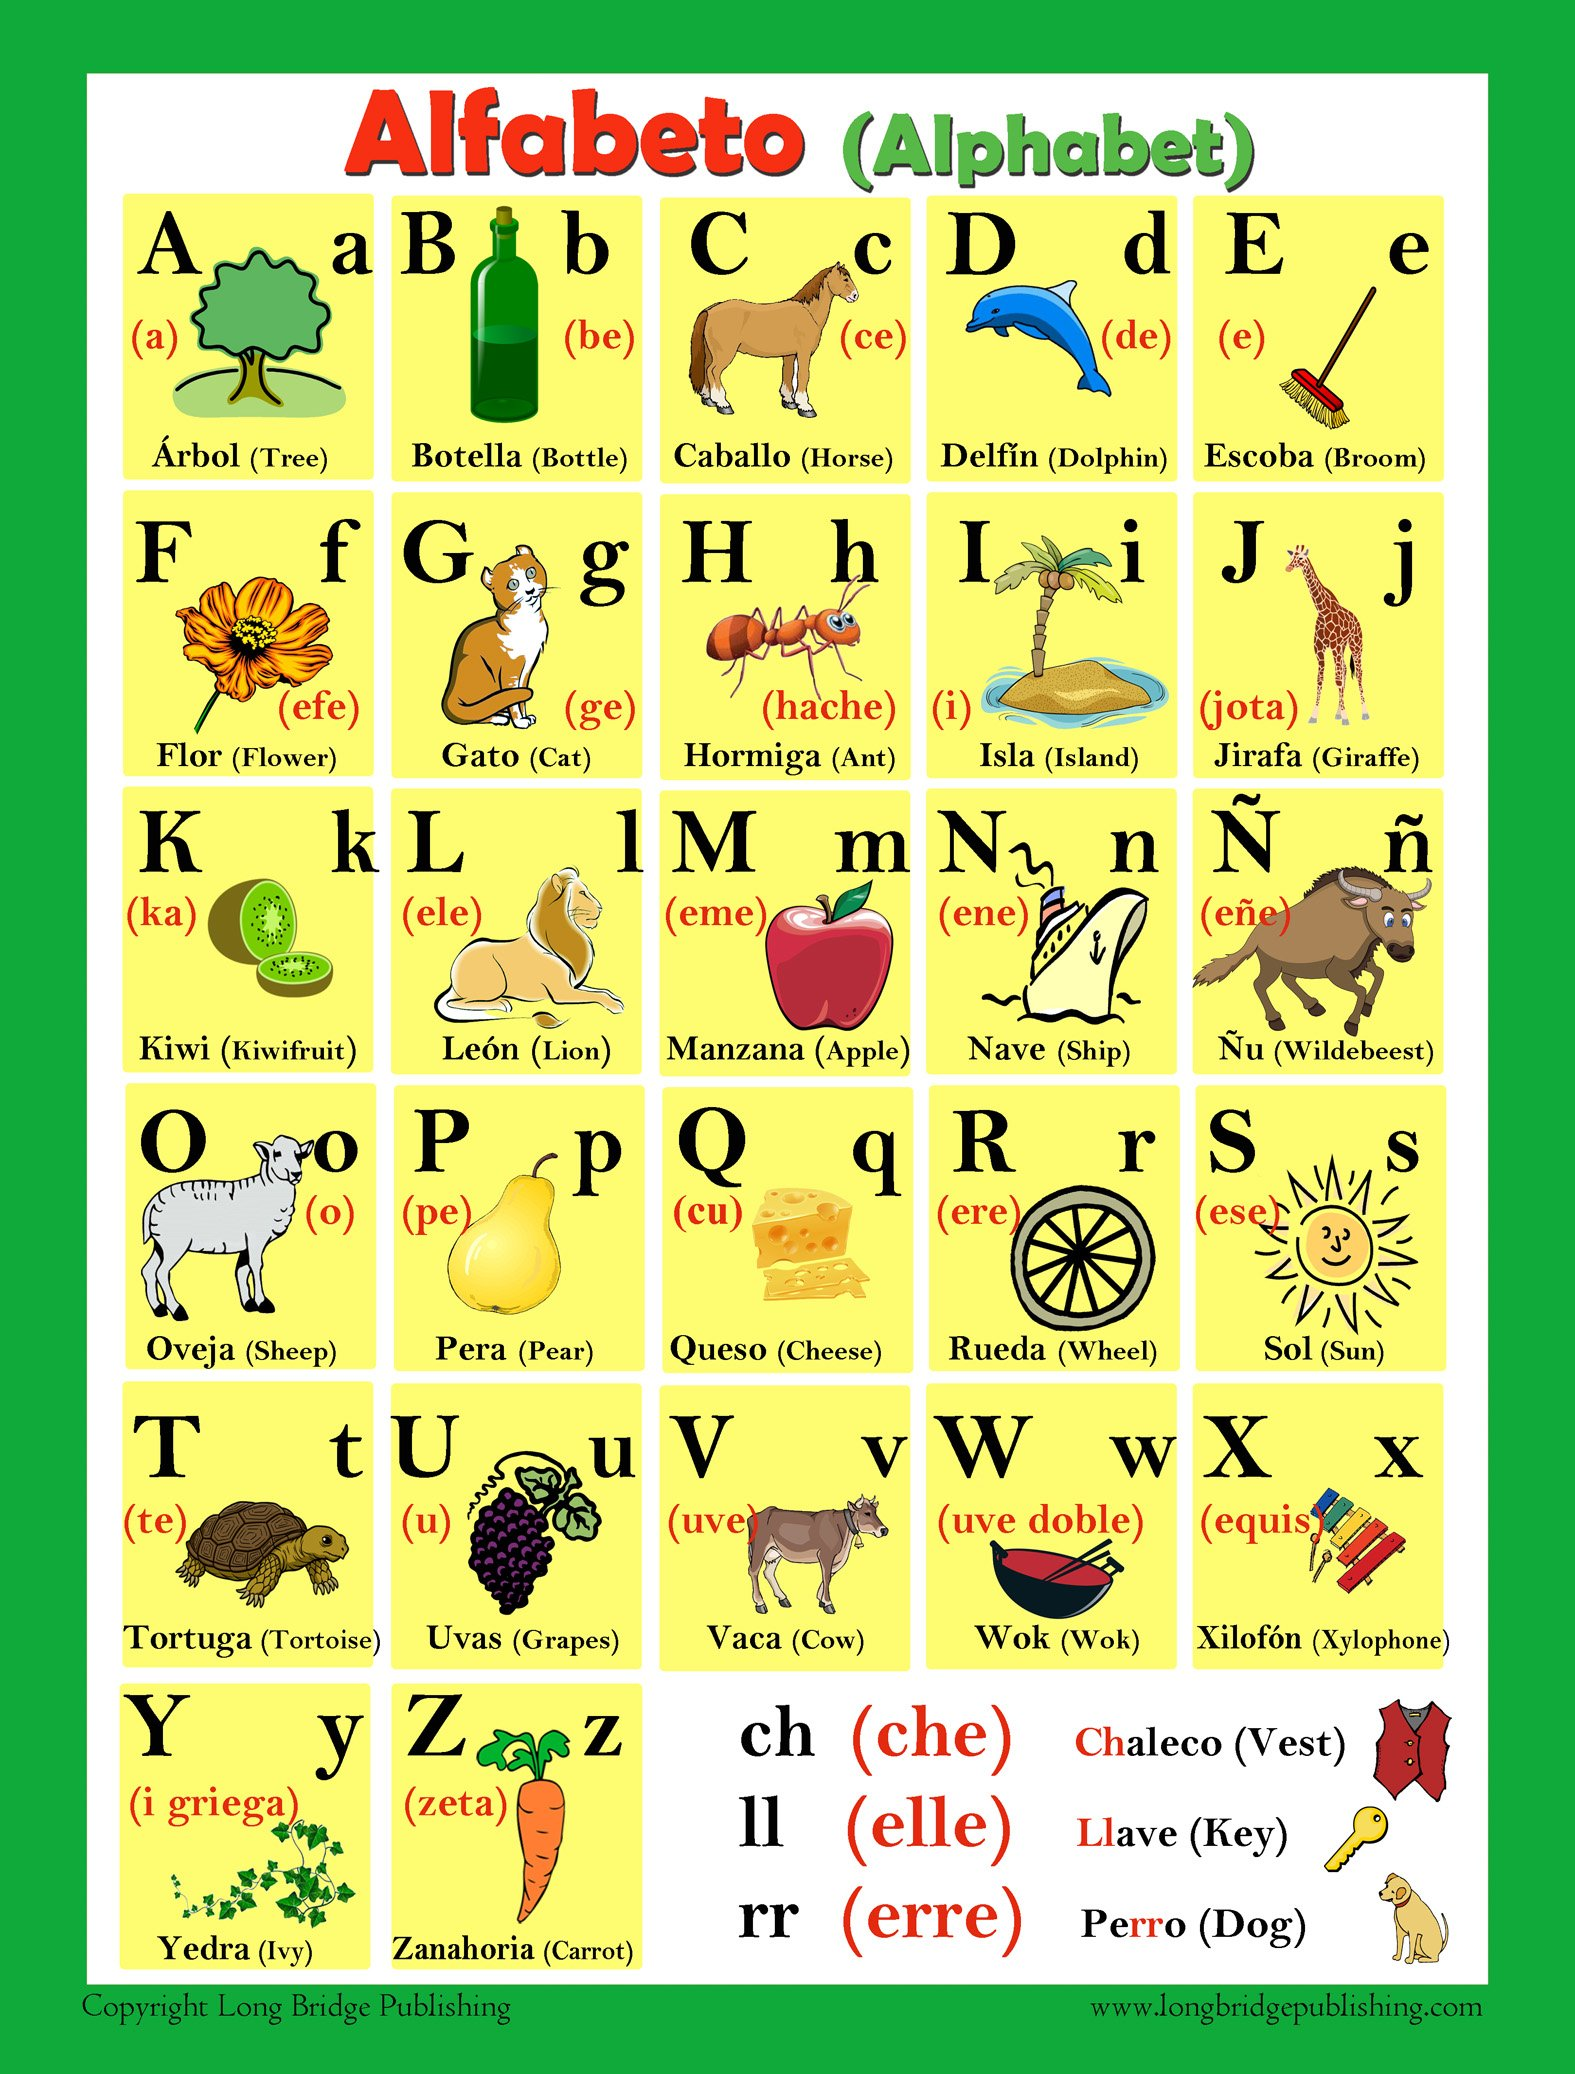 Spanish Language School Poster - Alphabet - Wall Chart for Home and Classroom - Spanish-english Bilingual Text (18x24 inches) by Long Bridge Publishing